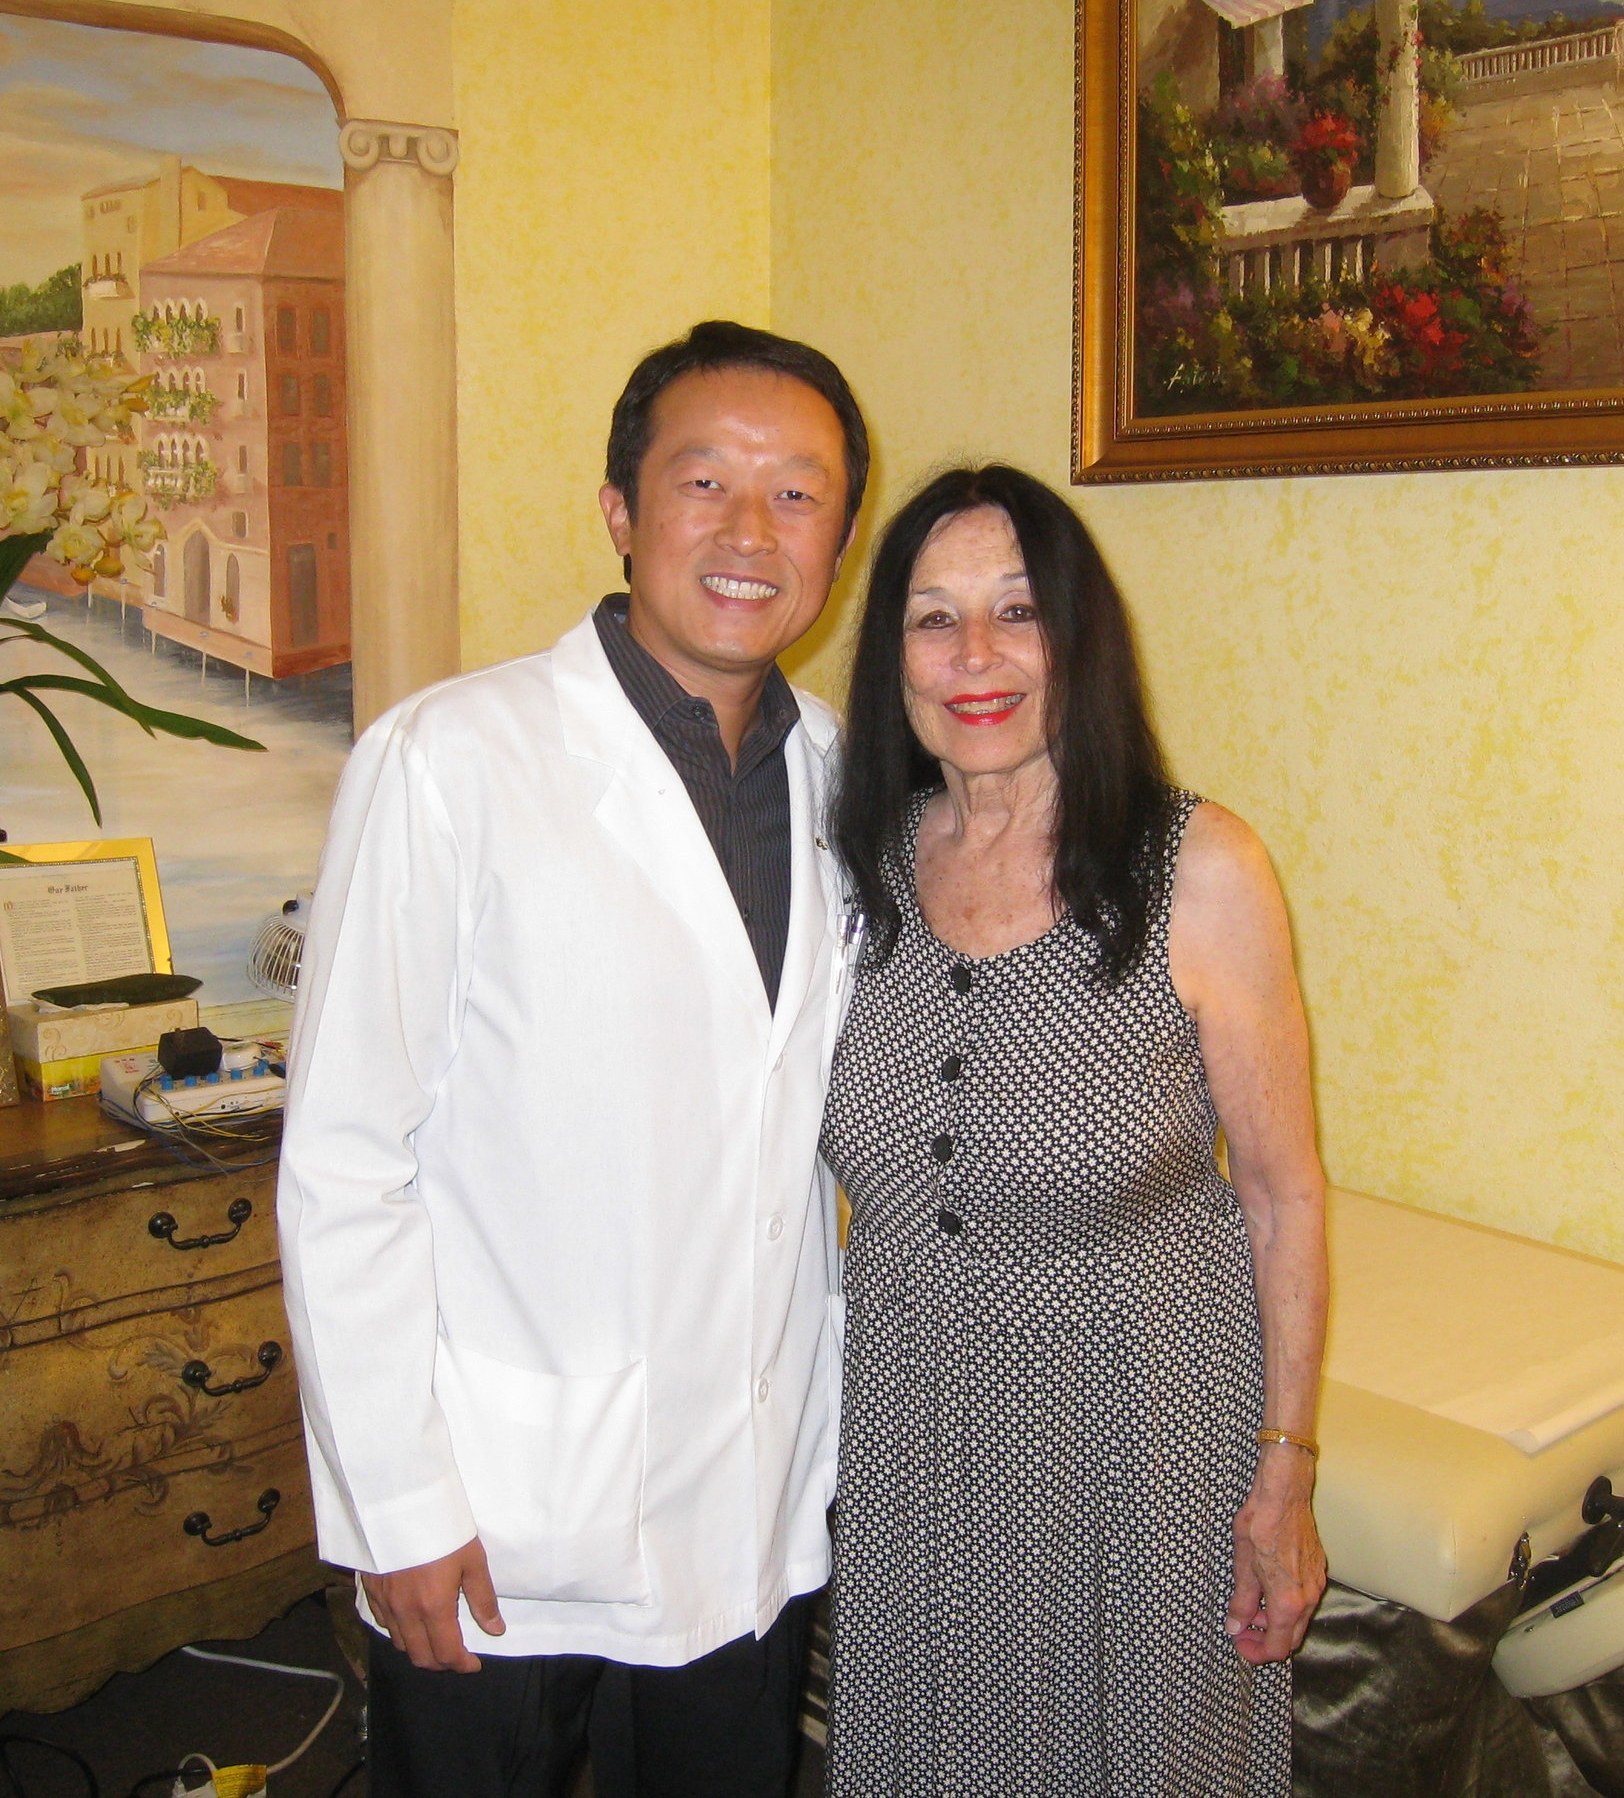 shingles-pain-acupuncture-acupuncturist-dr-huang